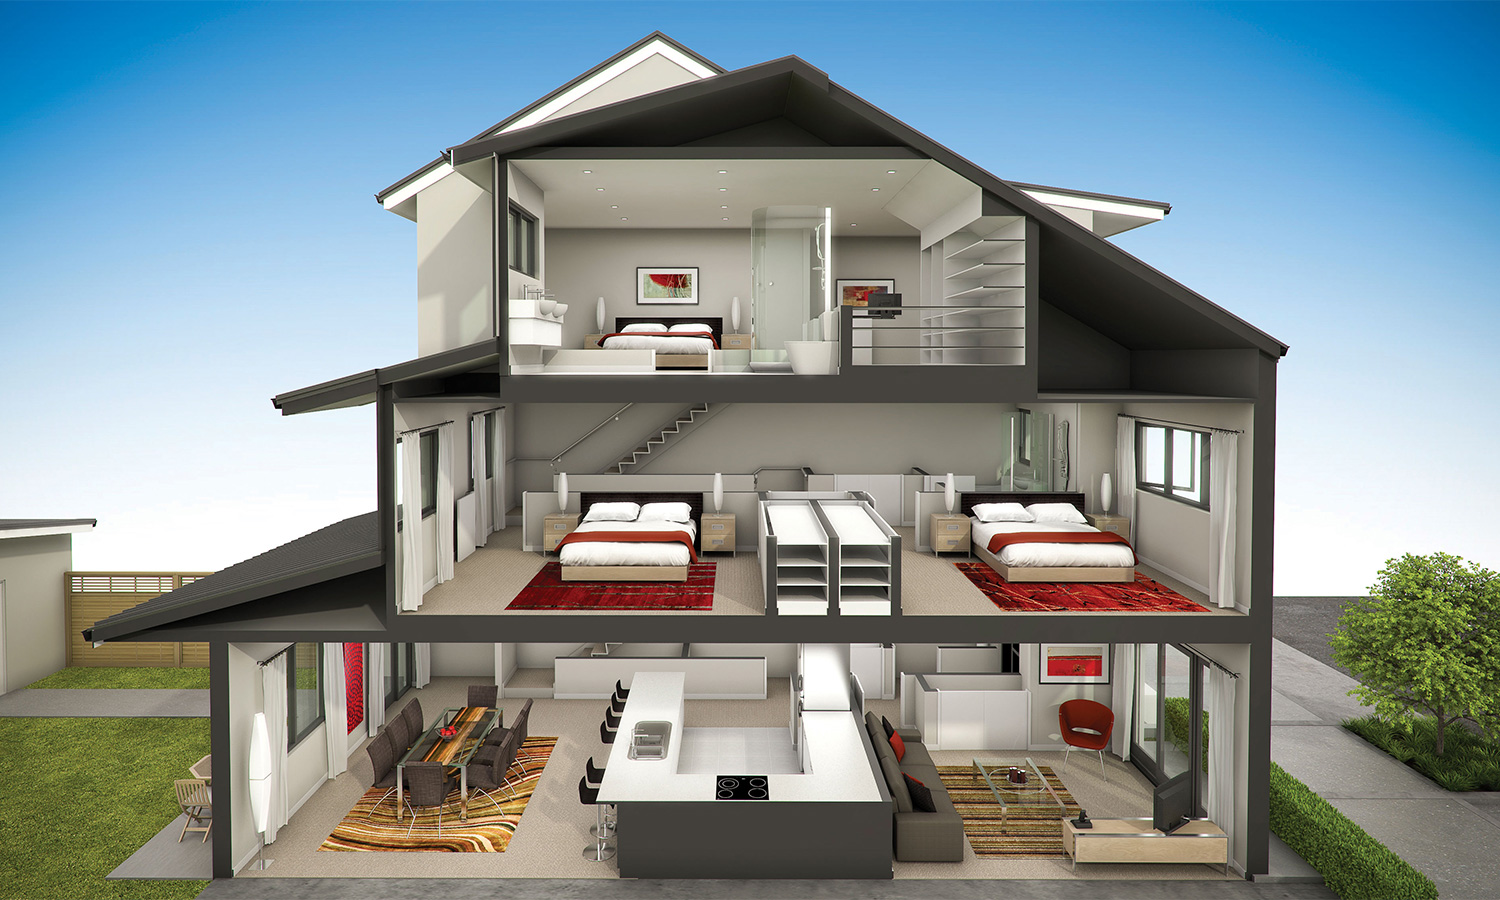 ag houses, no houses, new zealand houses, mc houses, co houses, sm houses, tp houses, japan houses, hk houses, ky houses, on house builders nz prices